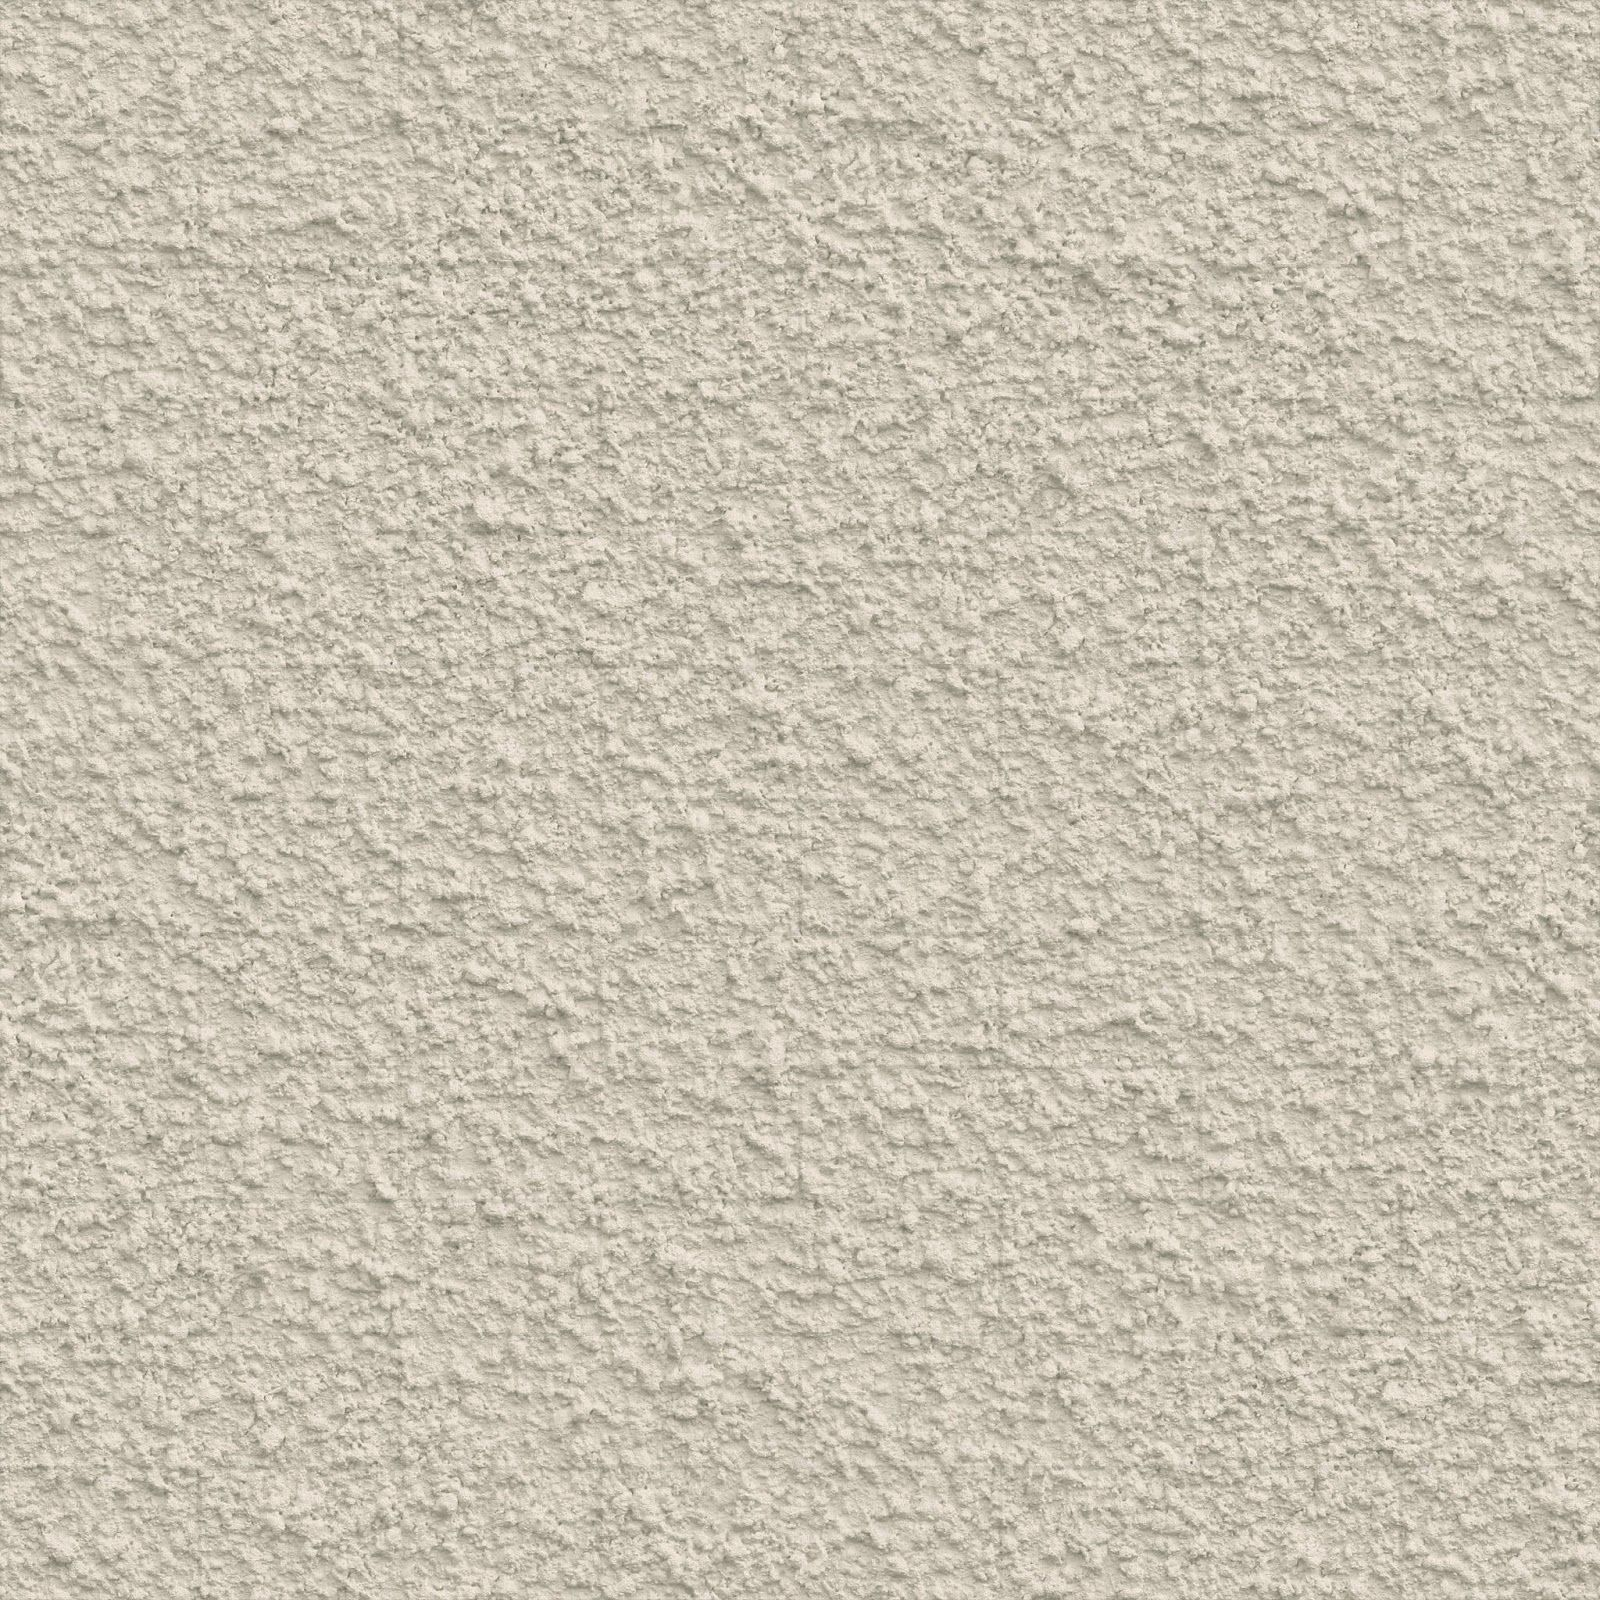 White Stucco Texture White Stucco Texture White Stucco Texture White Stucco Textu Concrete Wall Texture Textured Walls Concrete Texture